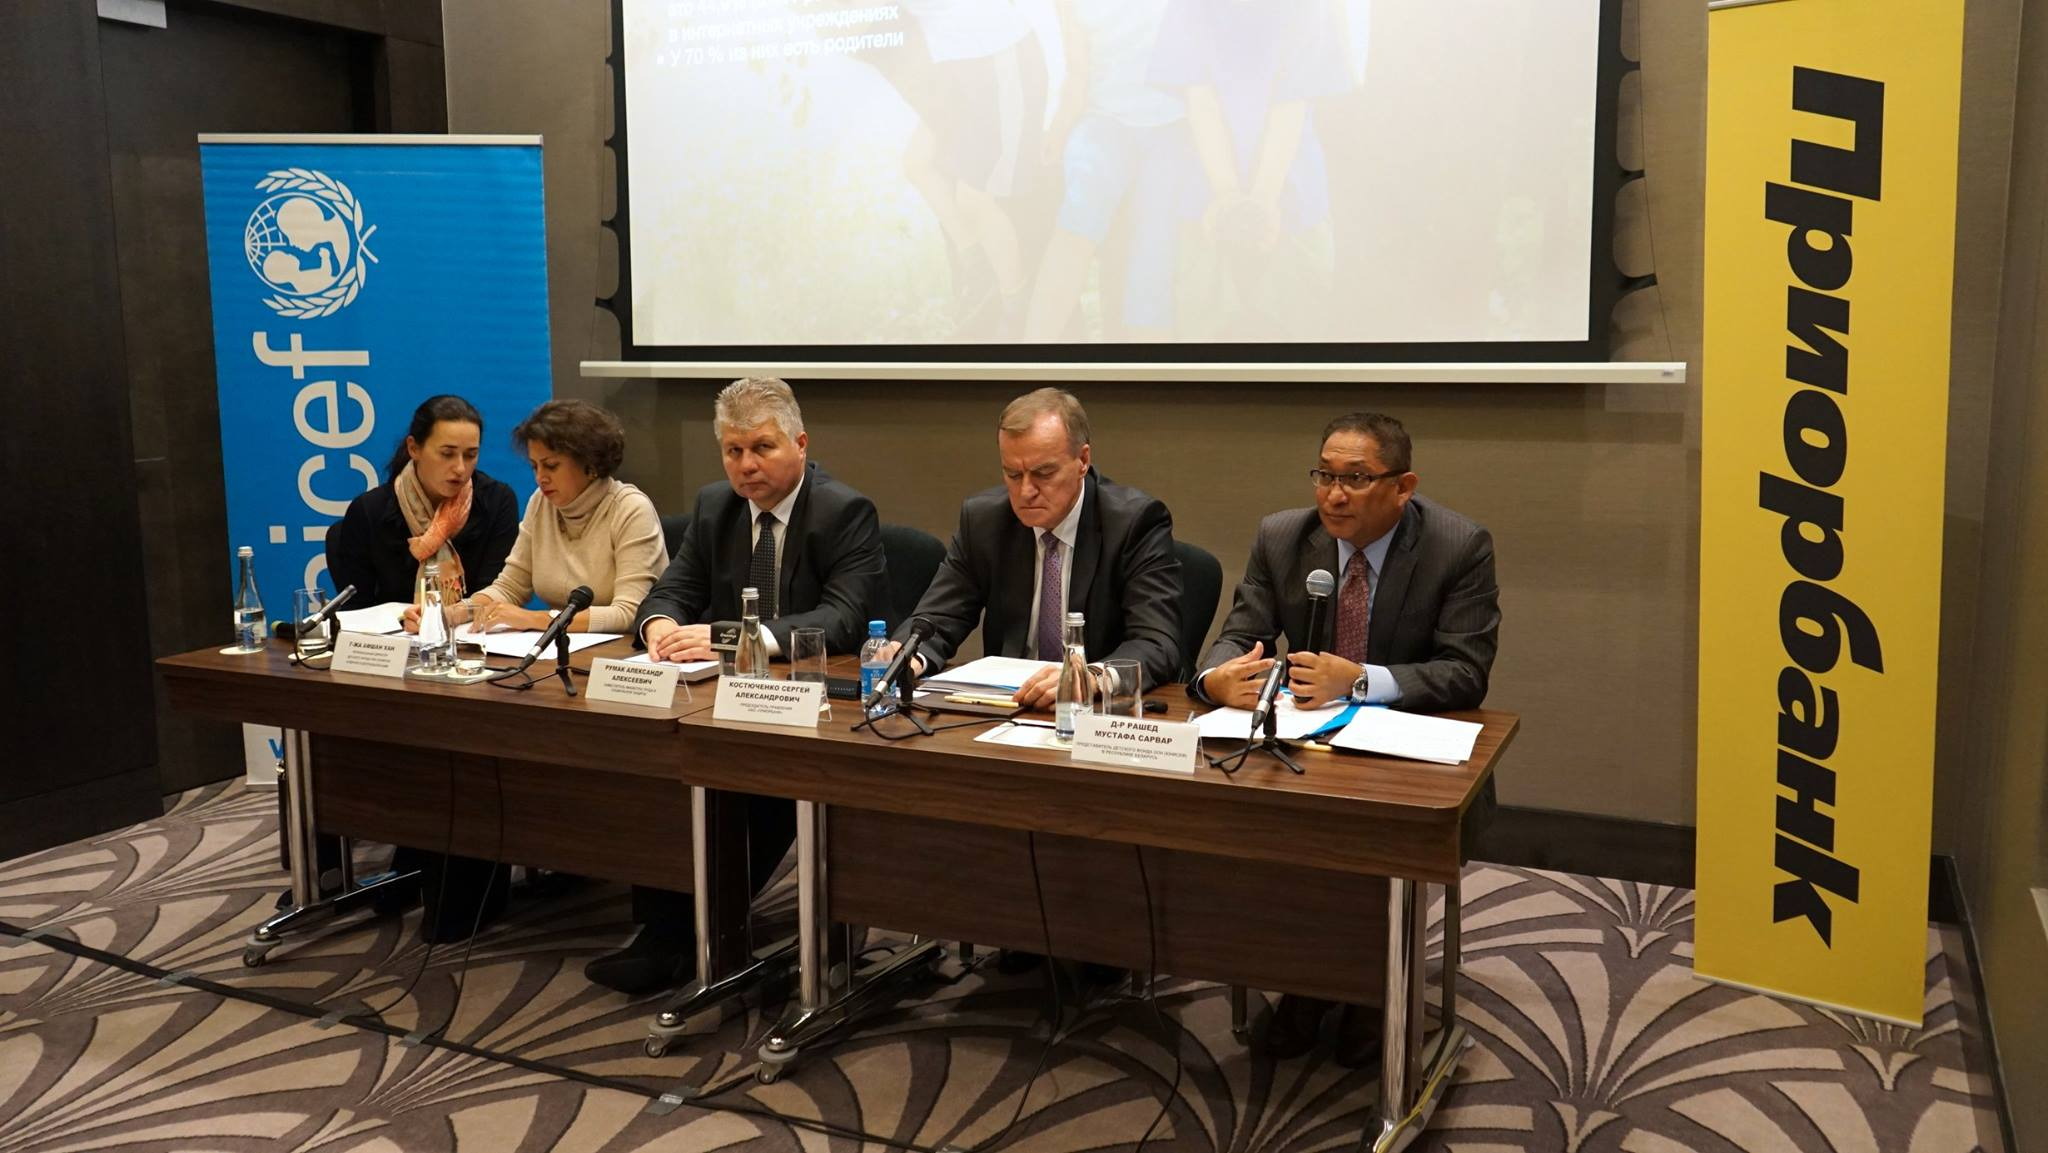 UNICEF and Priorbank launched a national-scale charity project for children